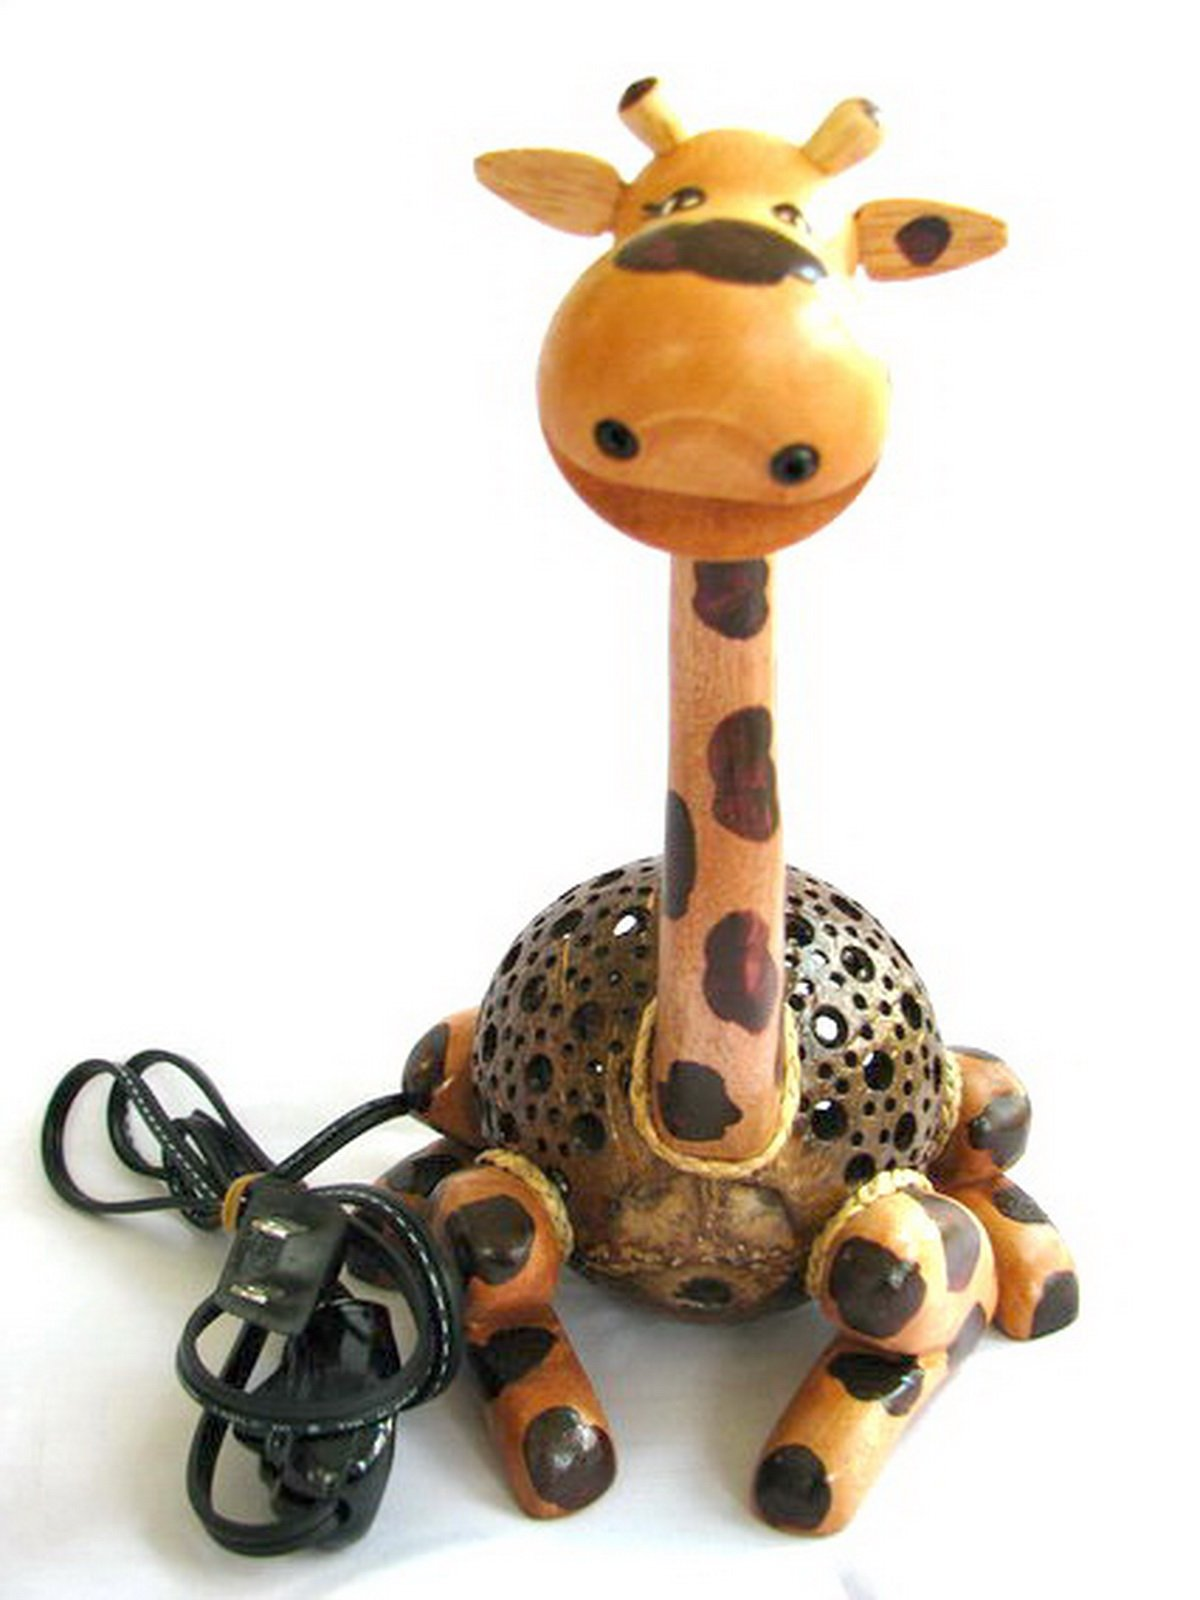 Coconut Shell Lamp - Giraffe Lamp 10'' Height - Wooden Crafts Handmade of Thailand Craftsman